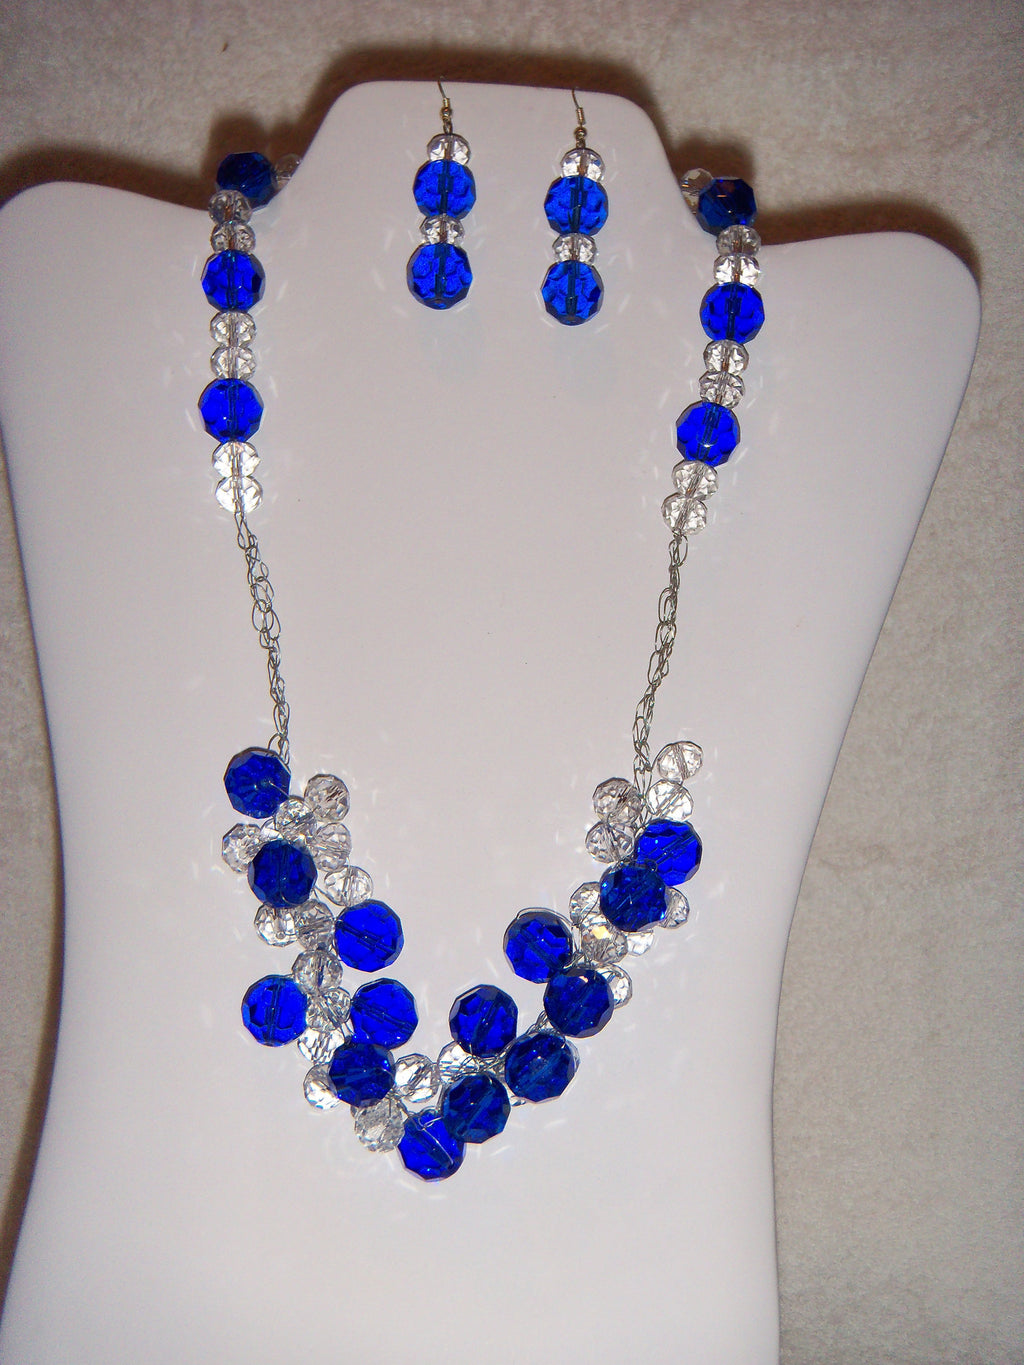 Blue Rondelle and Clear Rondelle Crocheted Necklace Set